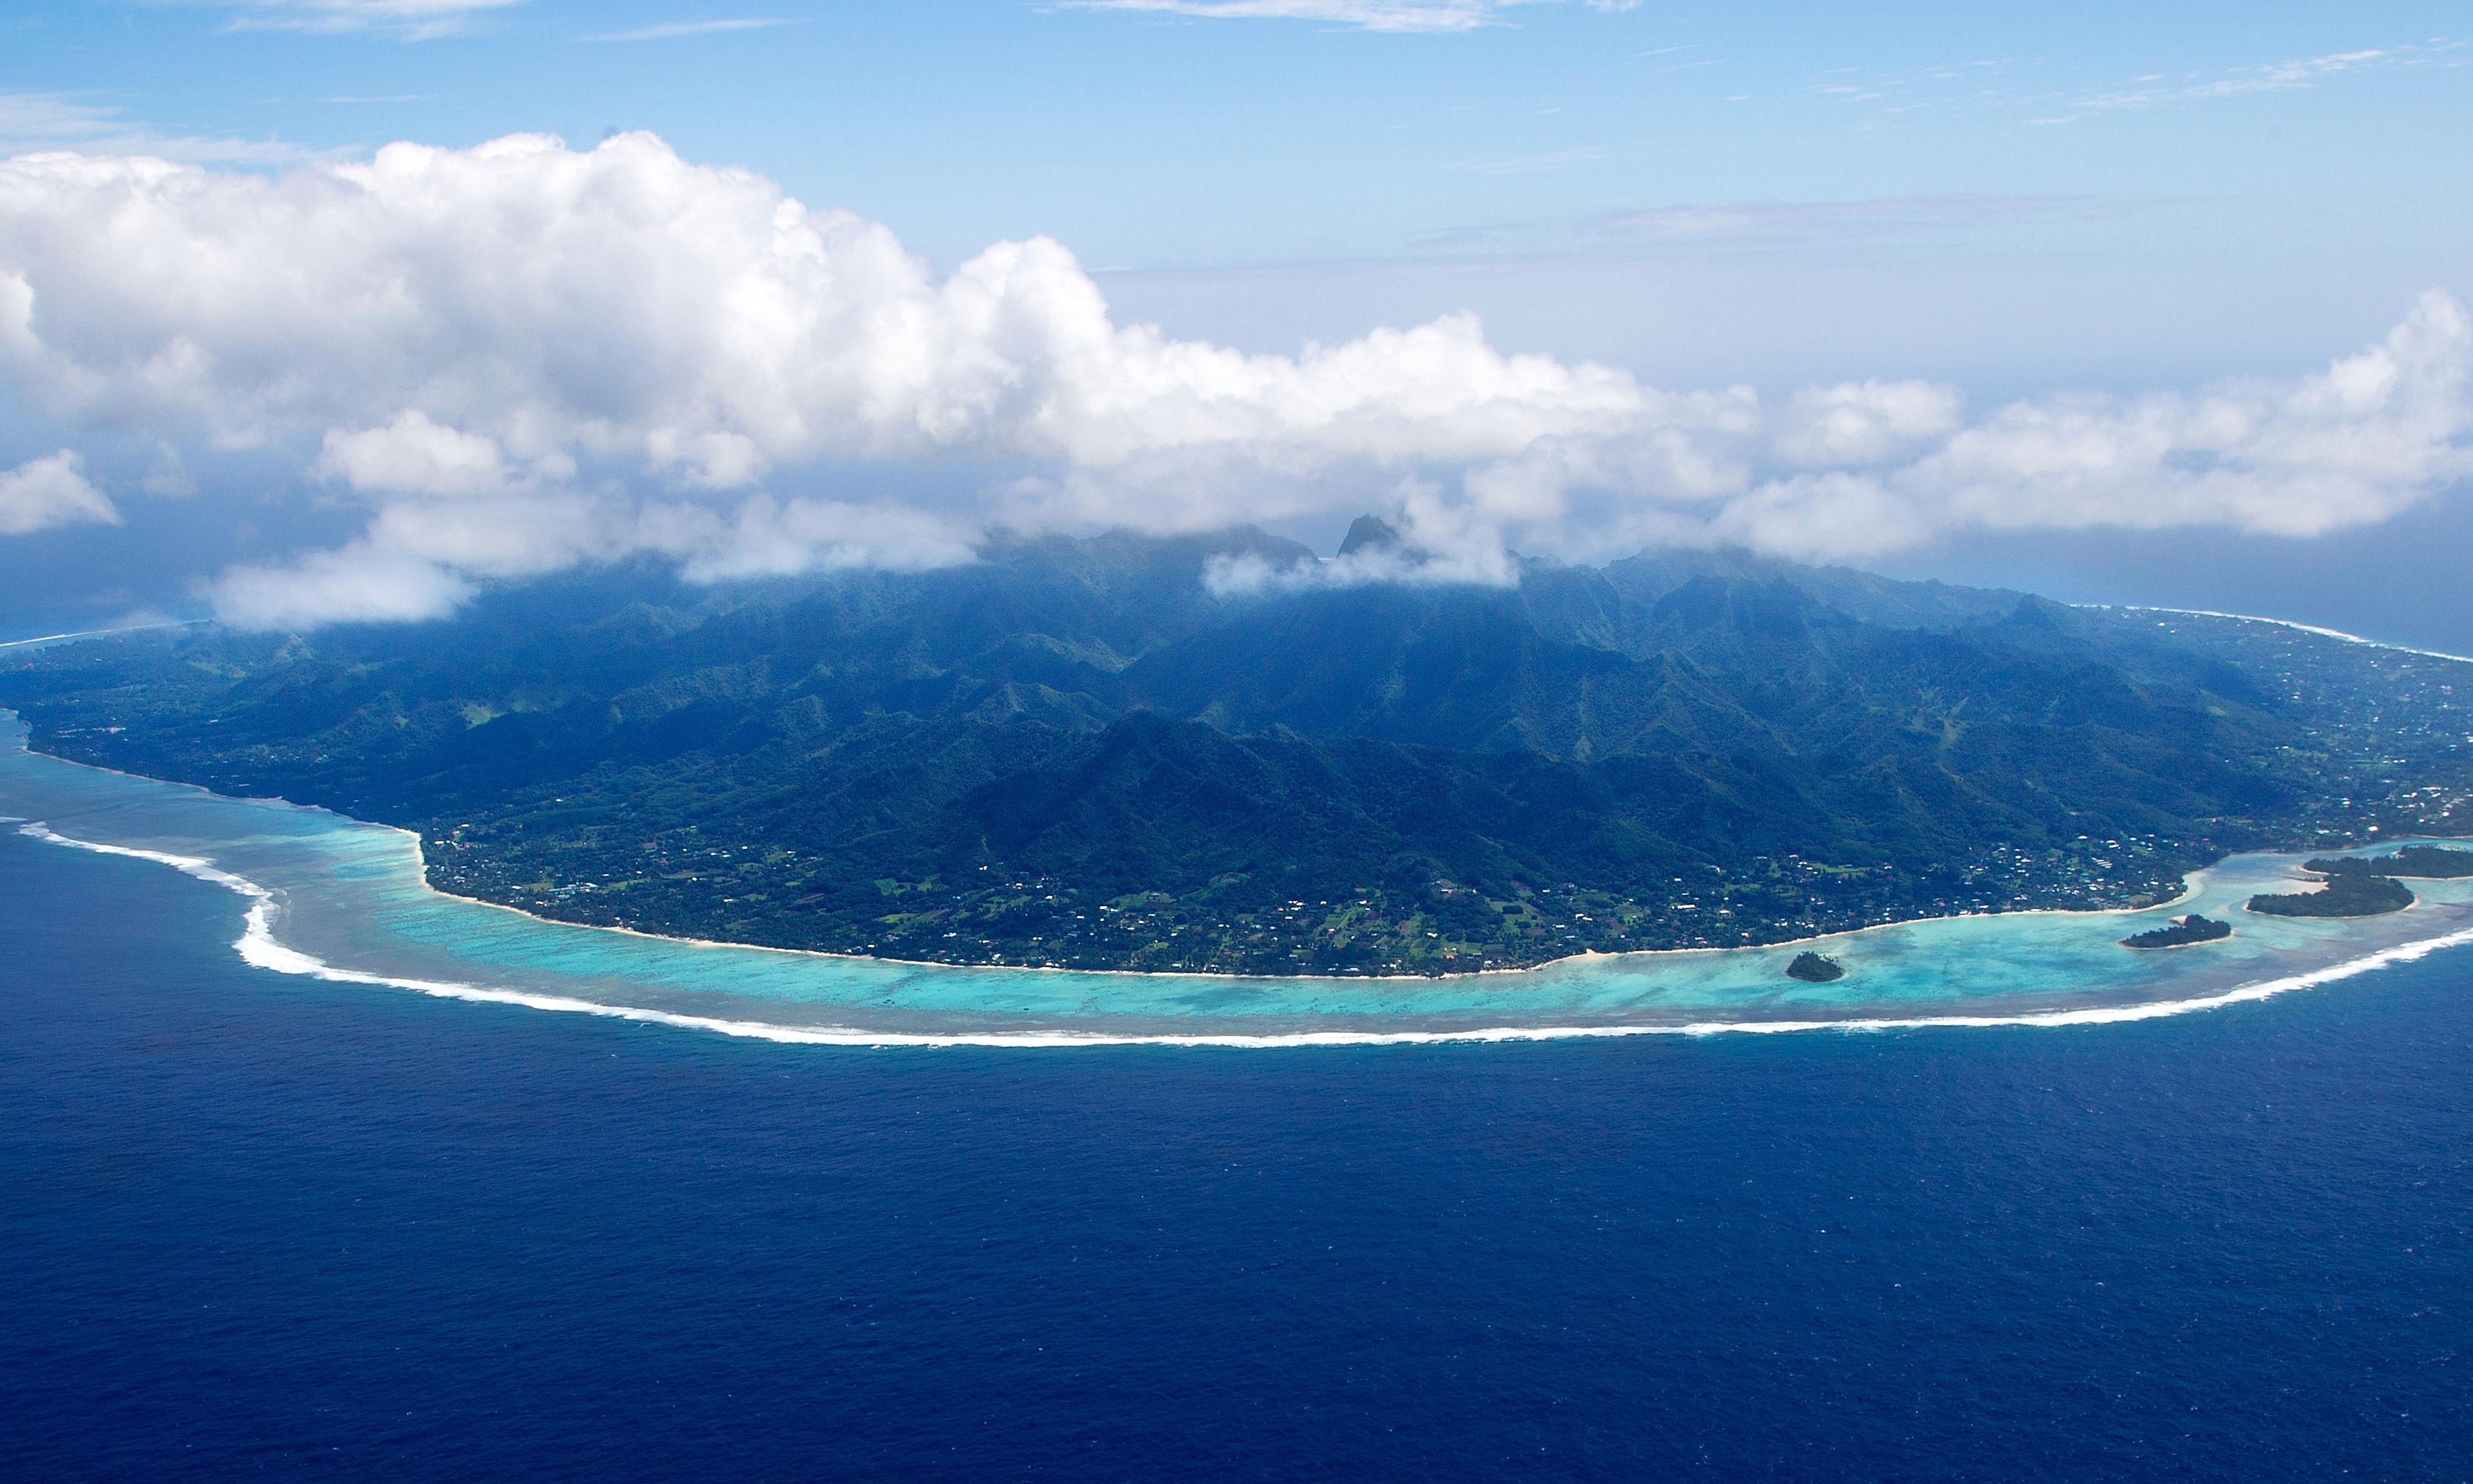 The Cook Islands: 'Everyone's happy. If you're not happy, you're in the wrong place'